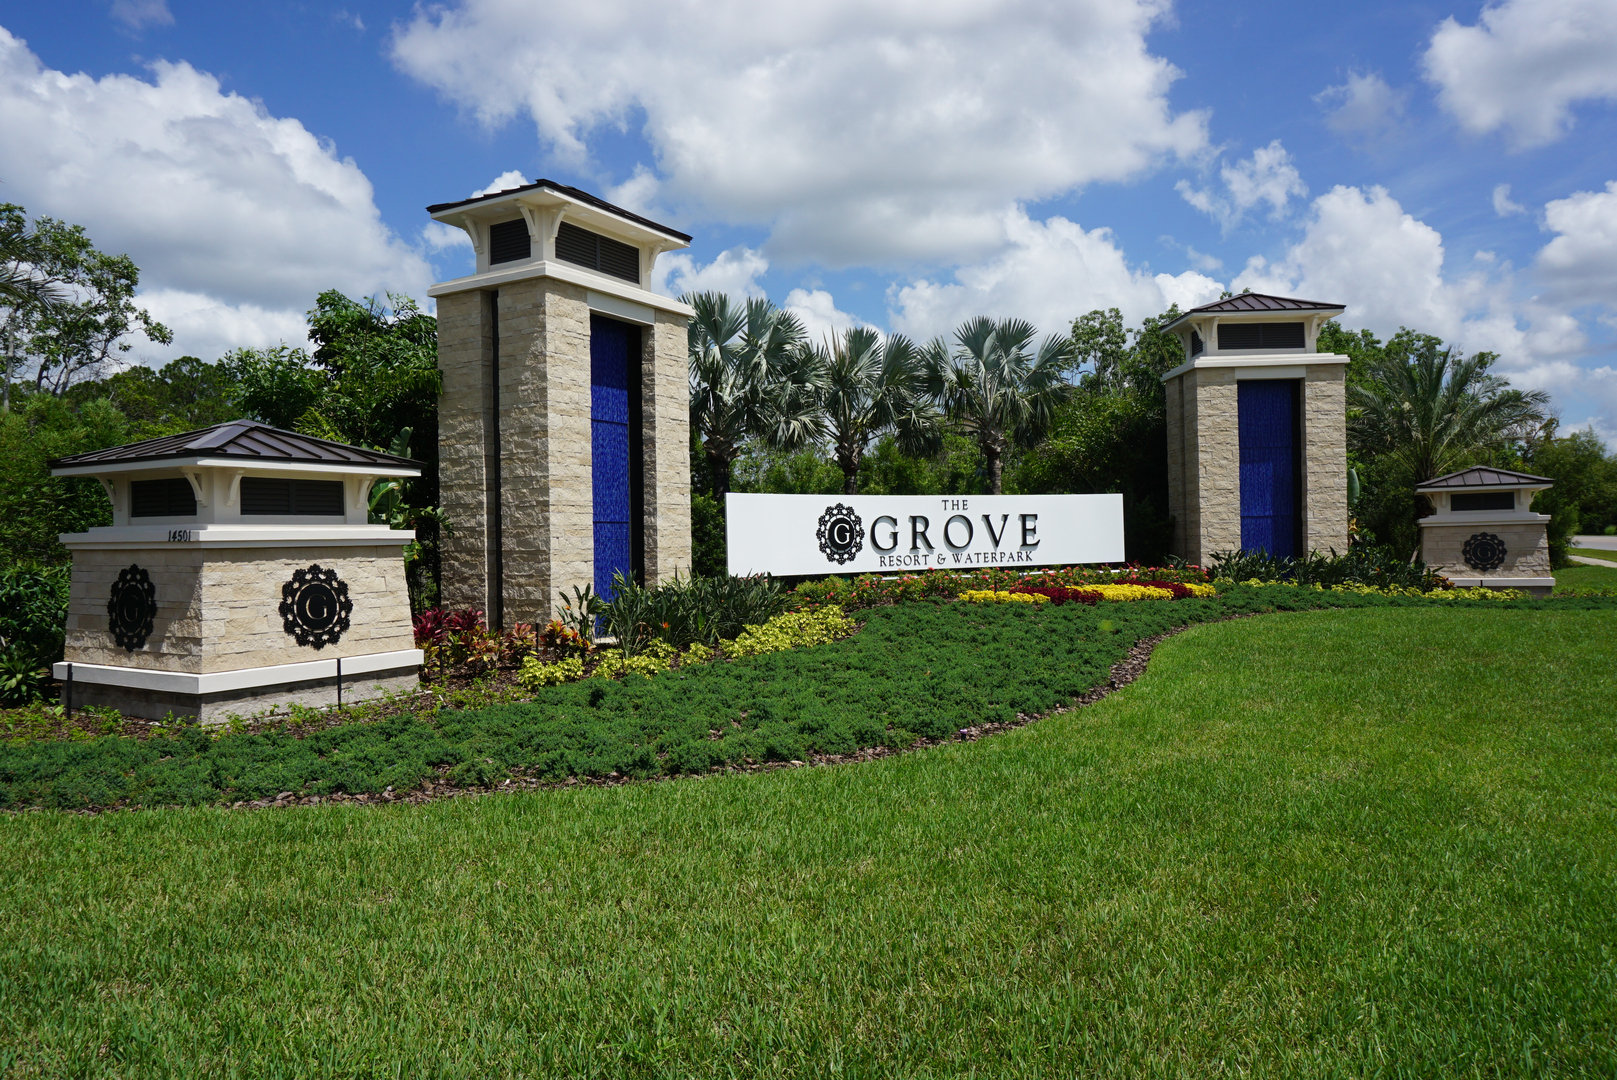 The Grove Resort Winter Garden, Fl. - Real estate with a REBATE